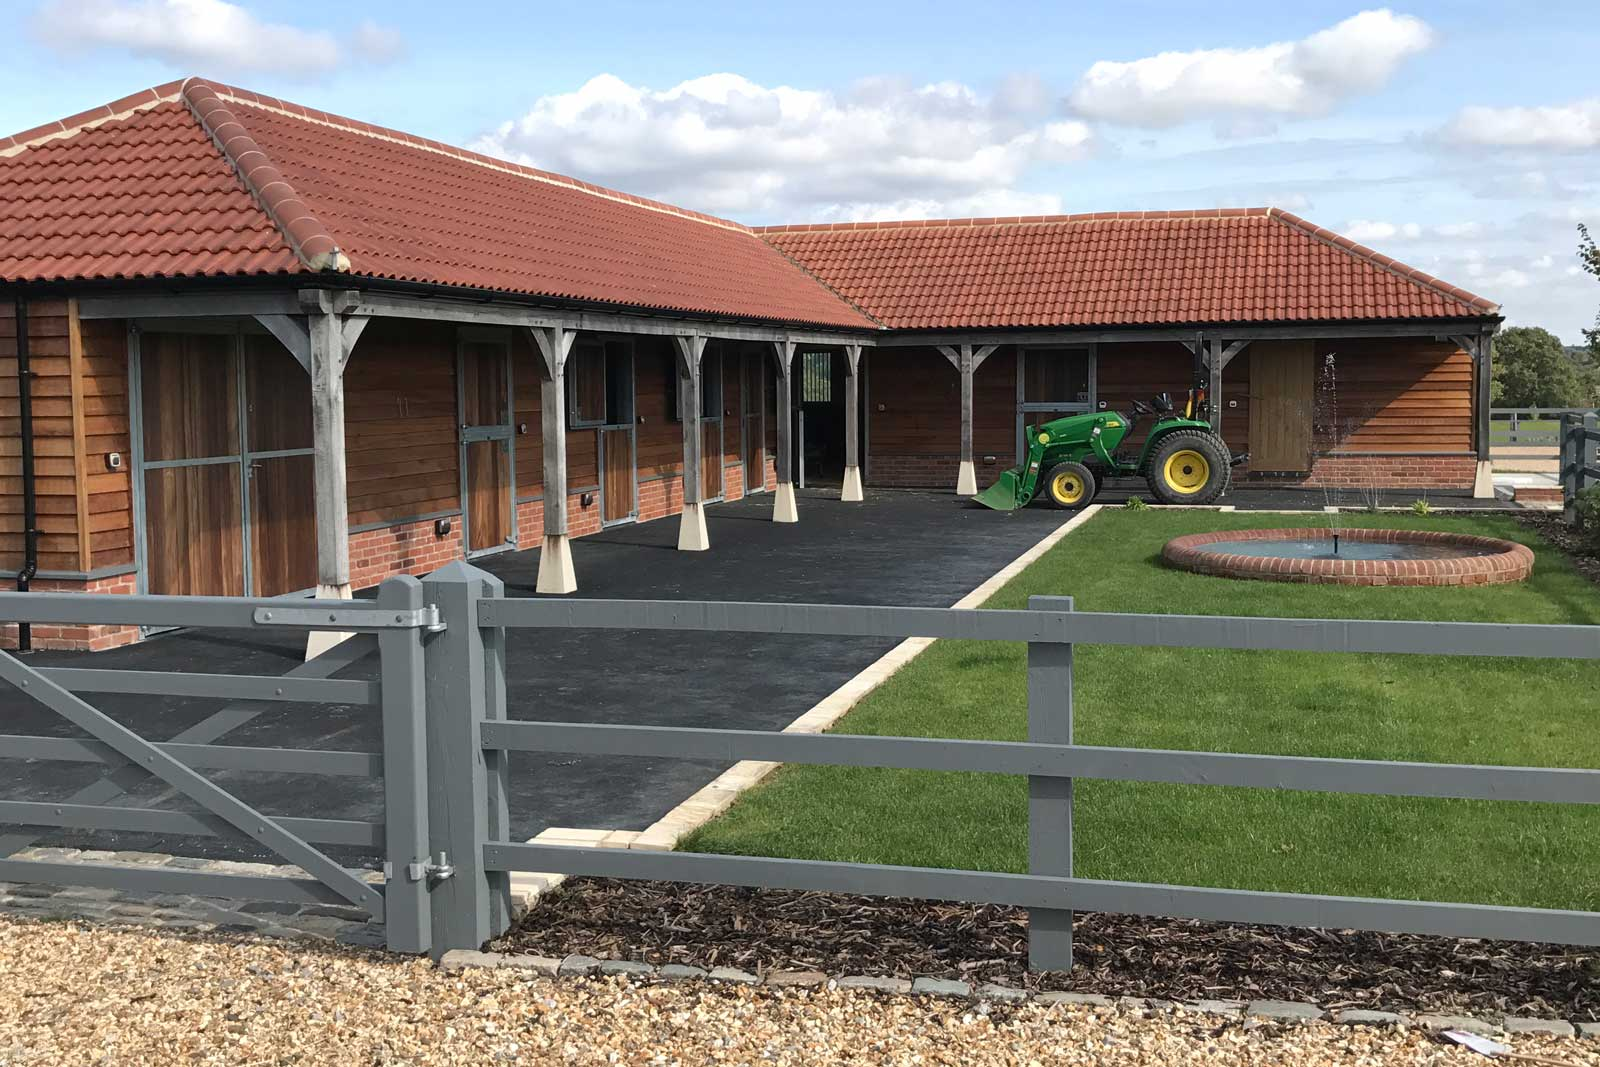 Stables in process of being built